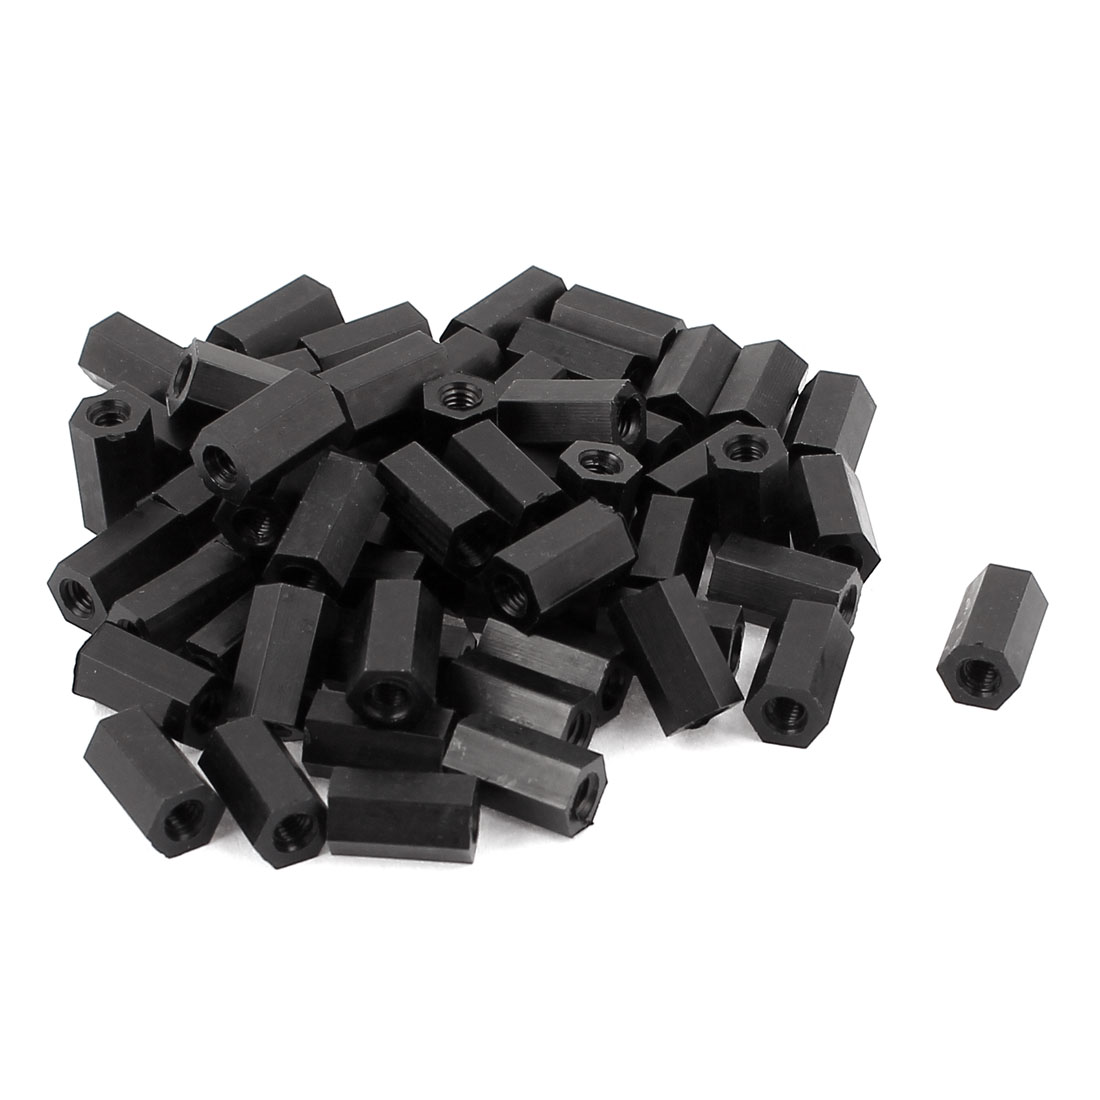 50Pcs M3x10mm Nylon Hex PCB Spacer Standoff Pillar Female Screw Nut Black